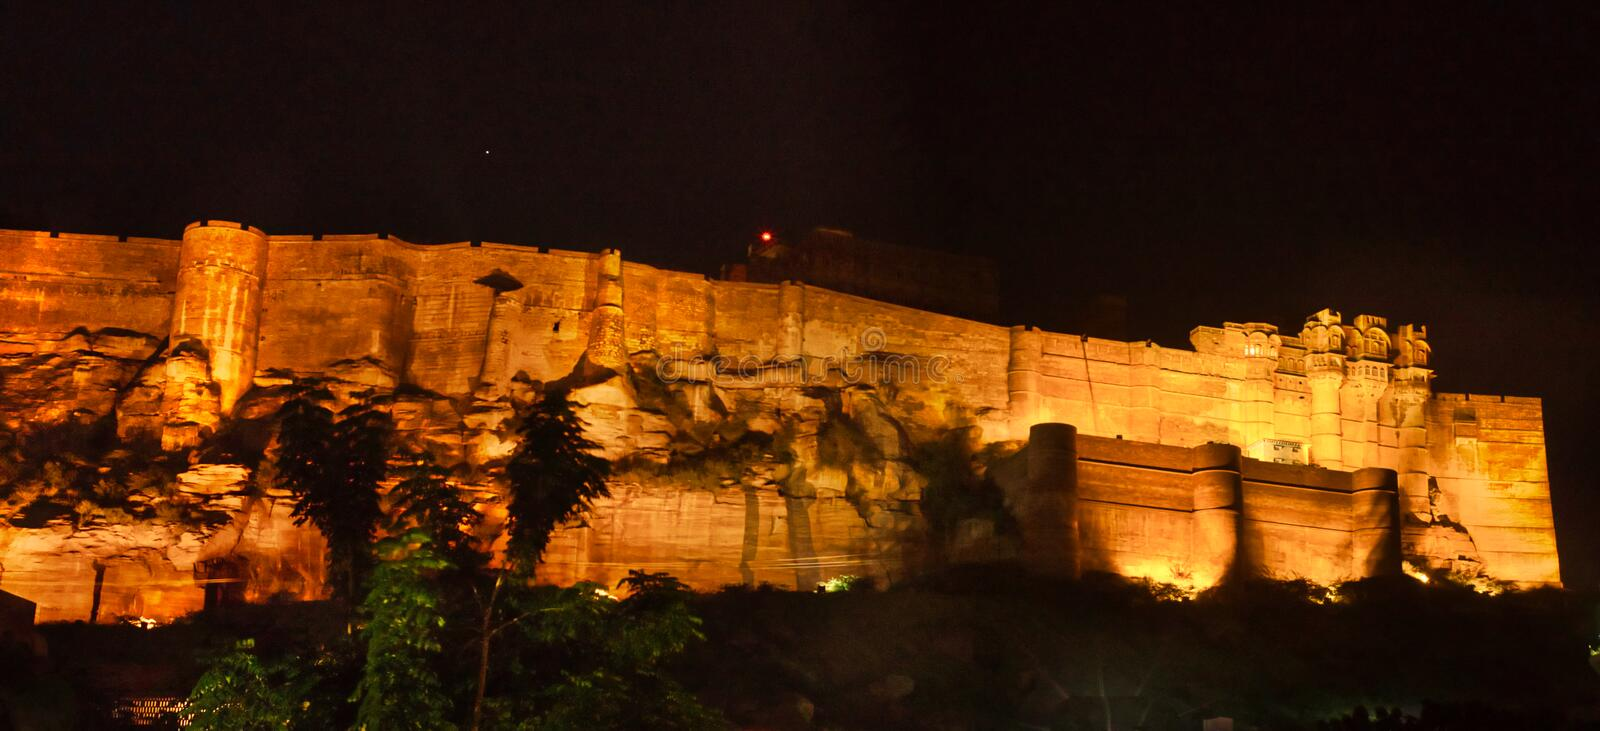 Mehrangarh Fort India. Night time:  The Mehrangarh Fort in Jodhpur in Rajasthan in western India. The fort is situated 125 m above the city, and is enclosed by royalty free stock images